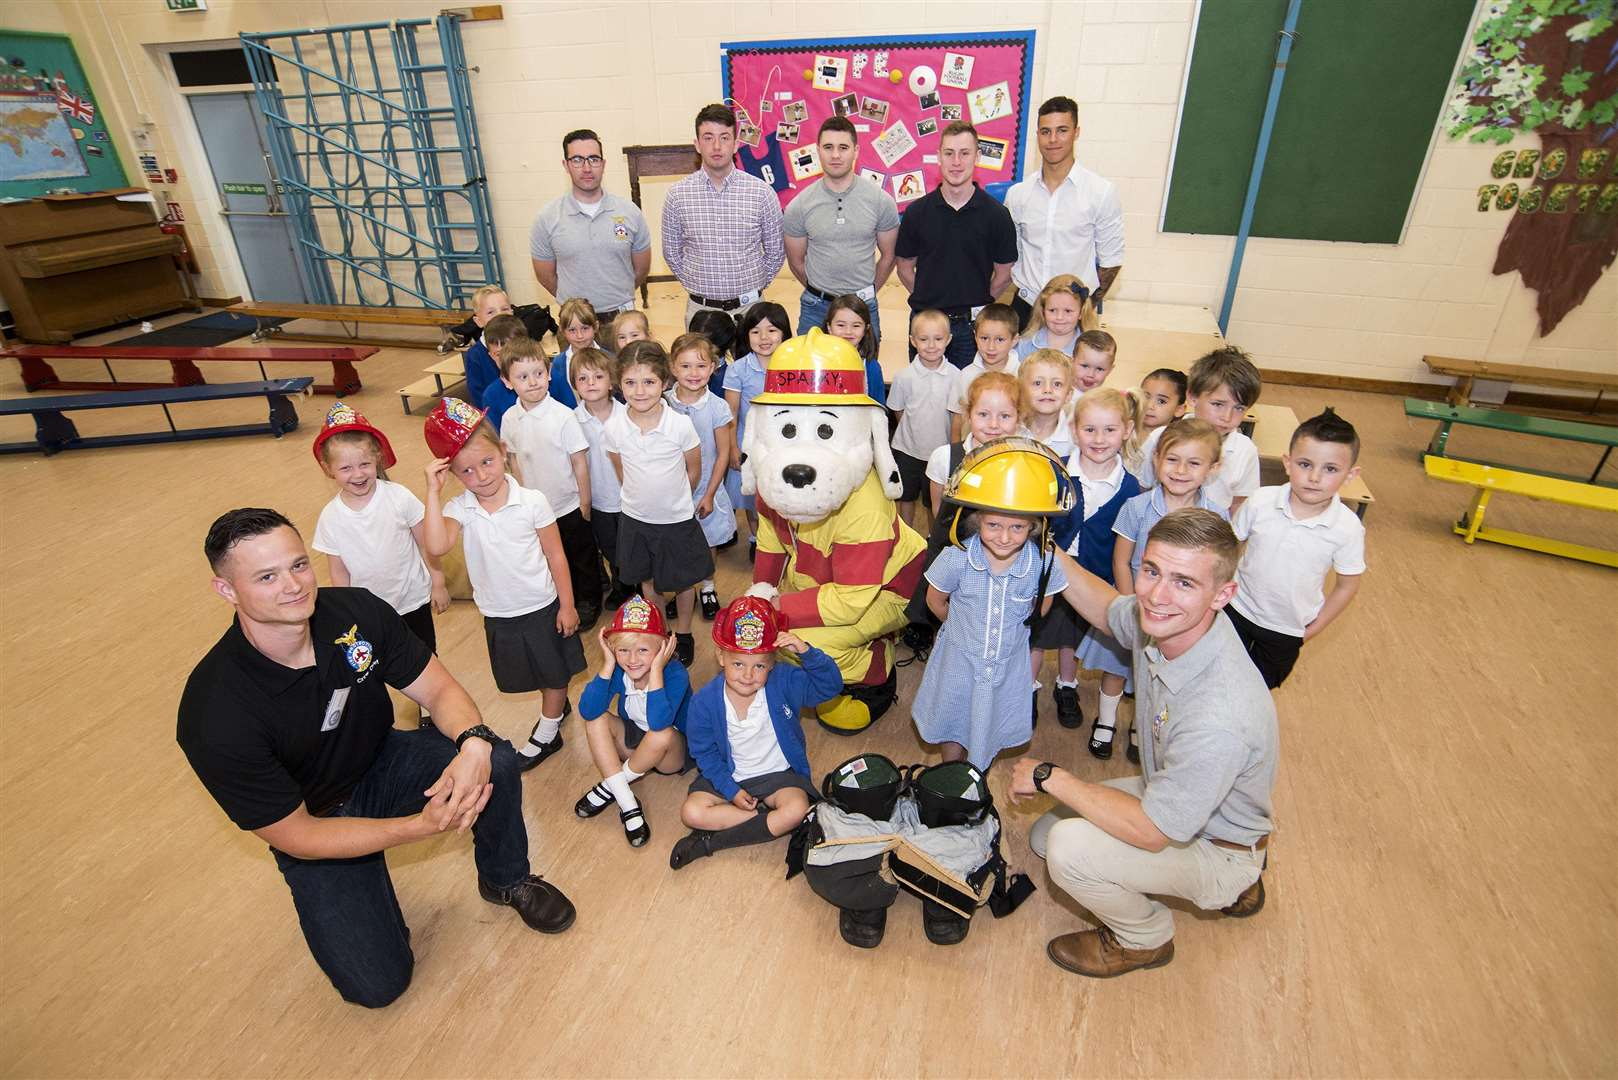 Sparky the Fire Dog and members of the USAF 100th Civil Engineer Squadron Fire Department and some of the children at Beck Row Primary Academy.